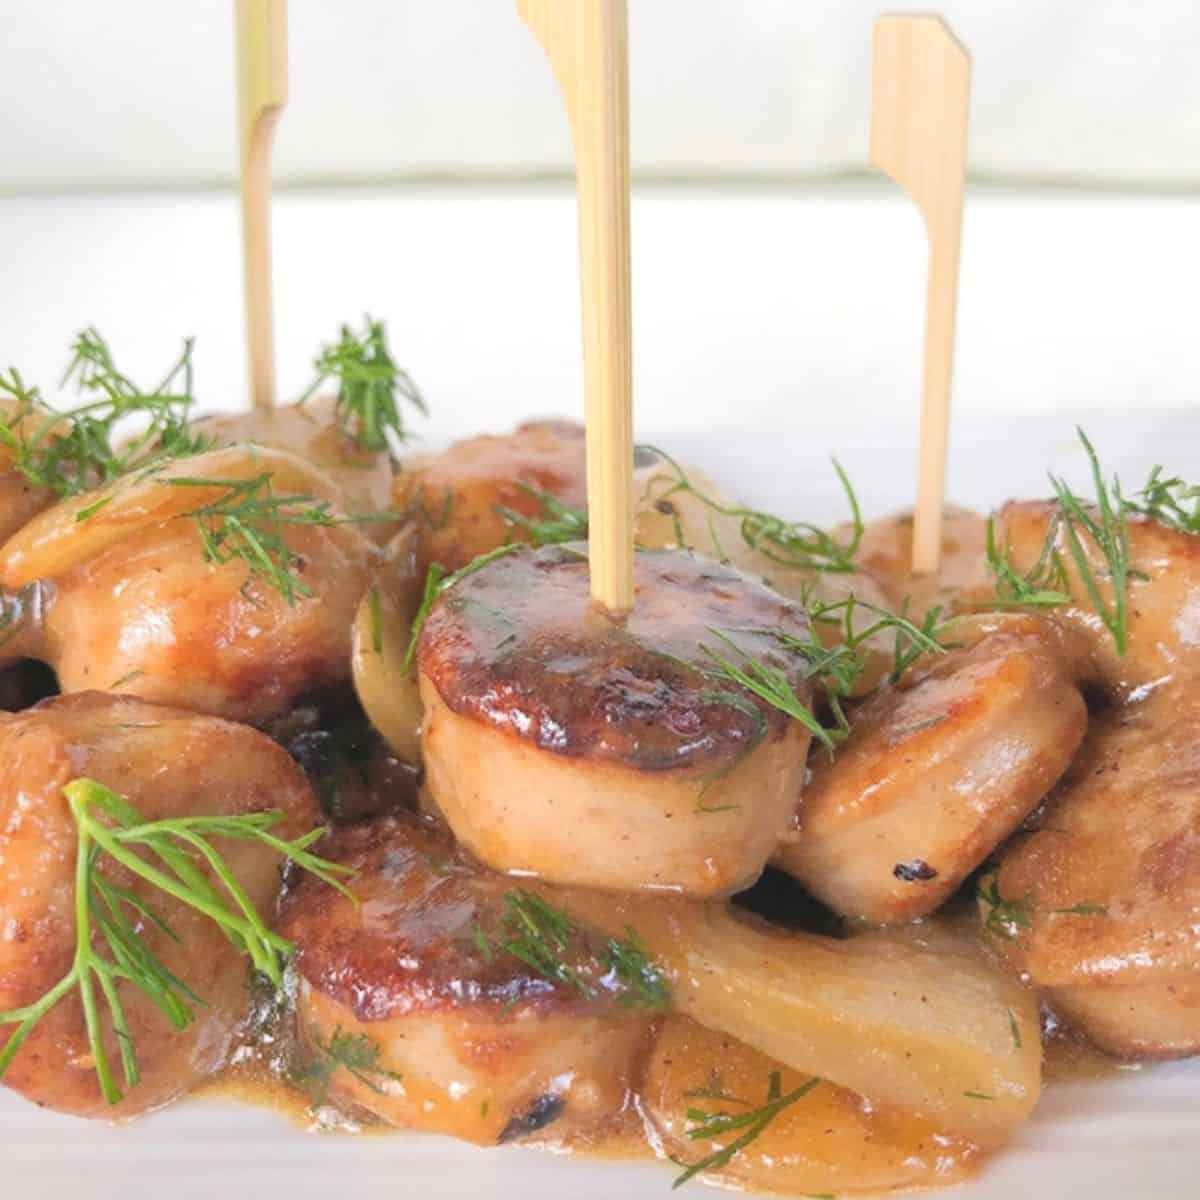 Chicken apple sausage skewered on a plate.